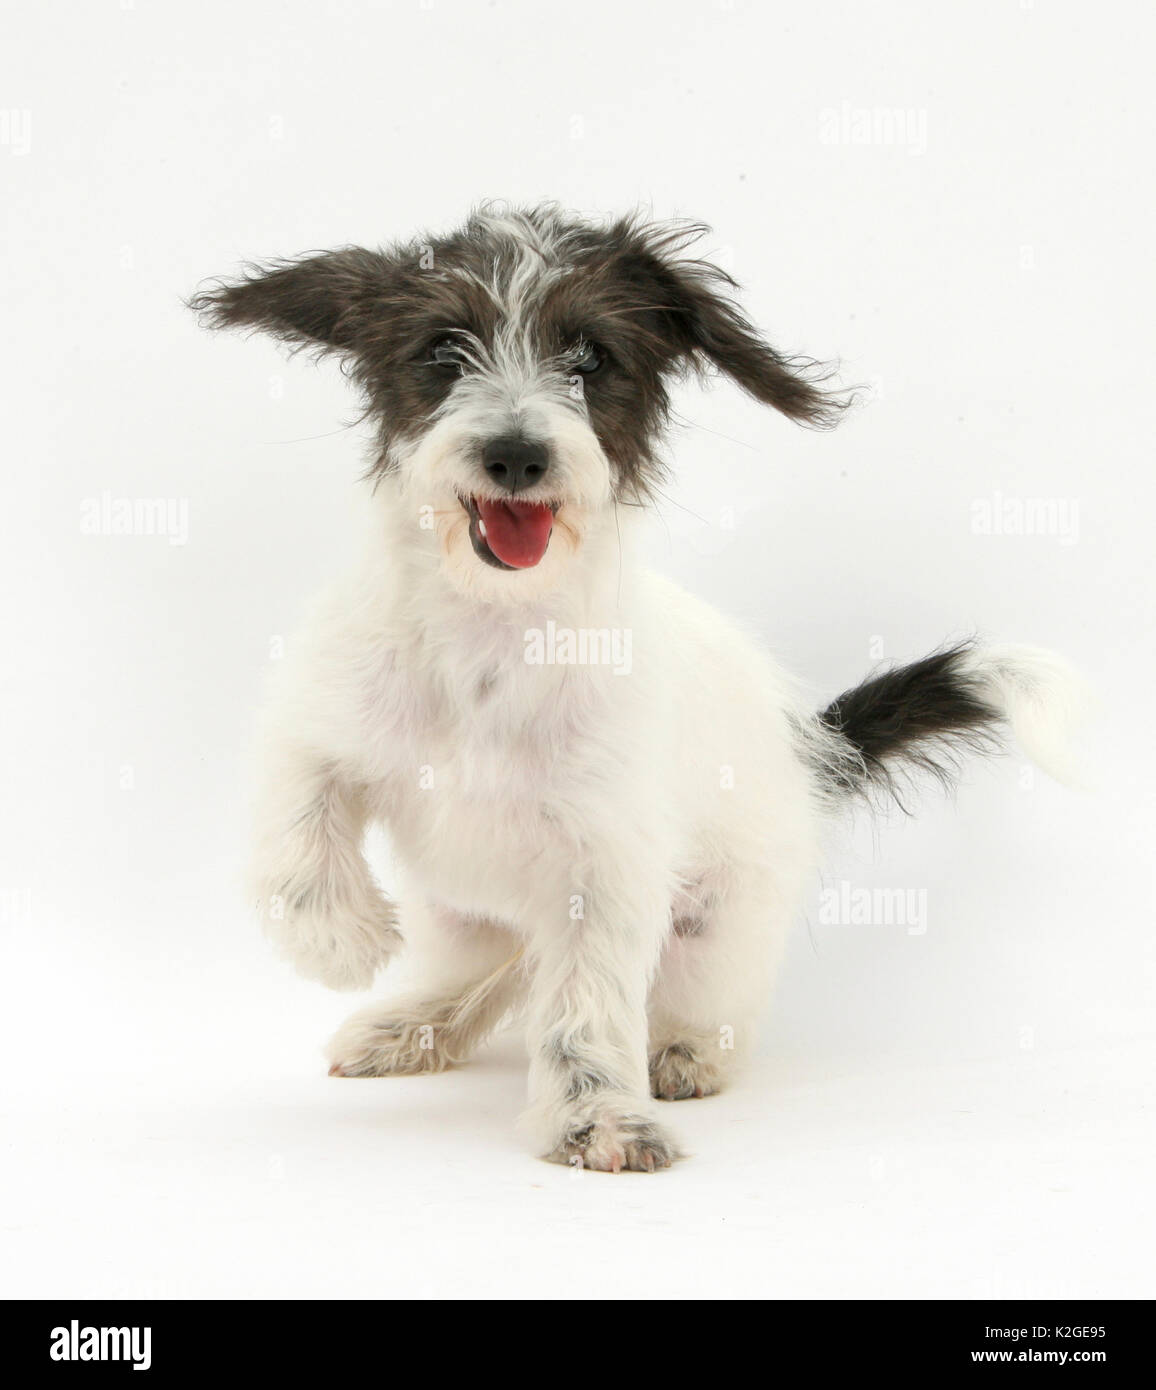 Black-and-white Jack-a-poo, Jack Russell cross Poodle puppy panting. - Stock Image